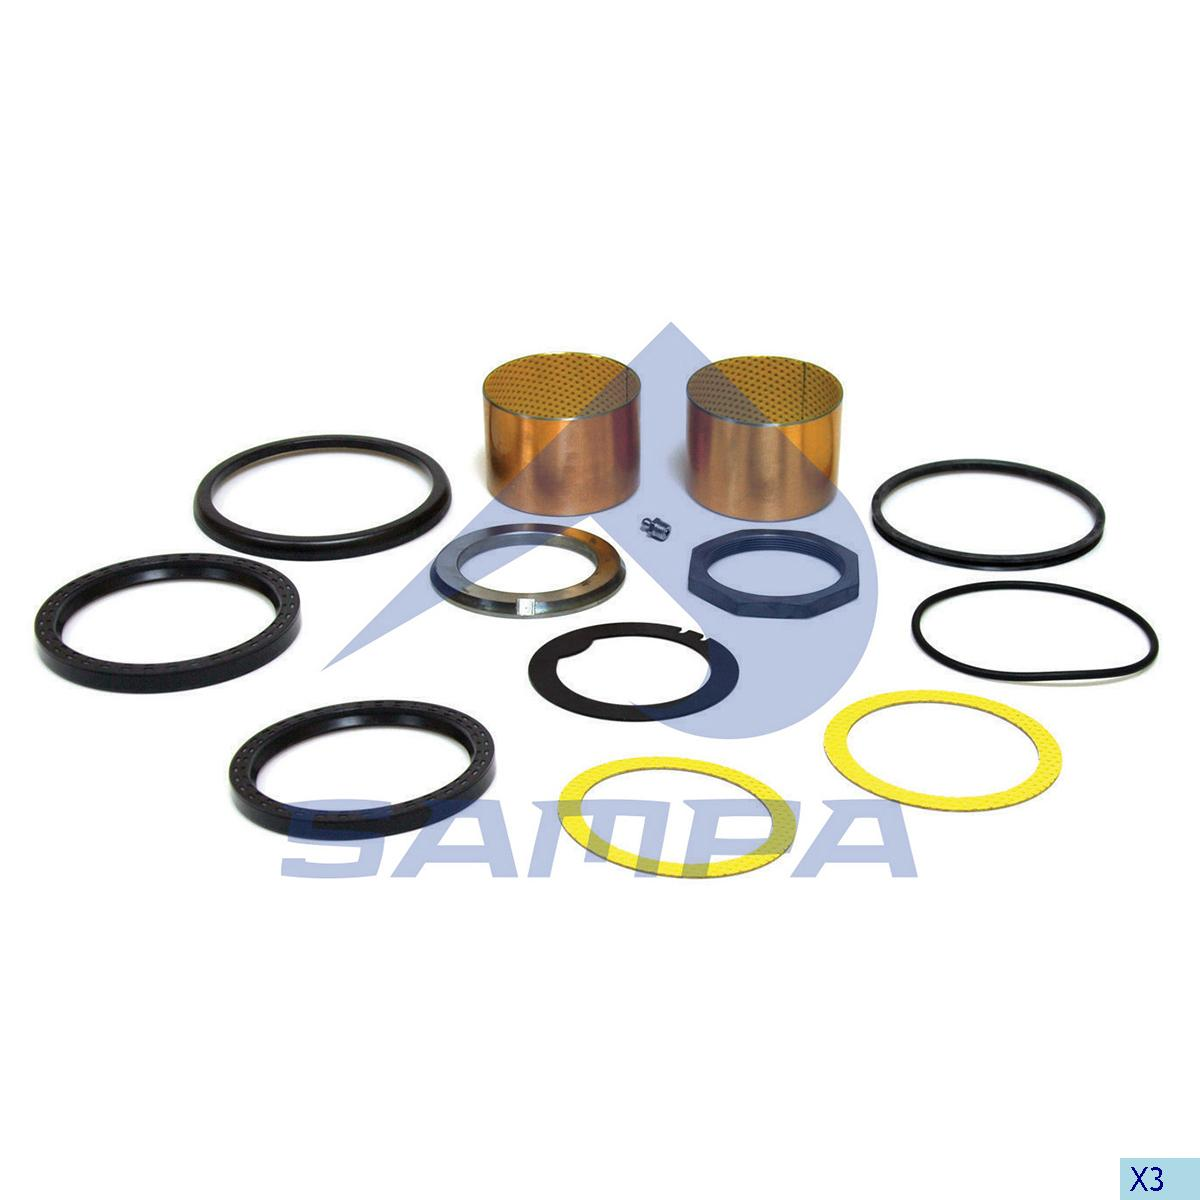 Repair Kit, Bogie Suspension, Scania, Suspension